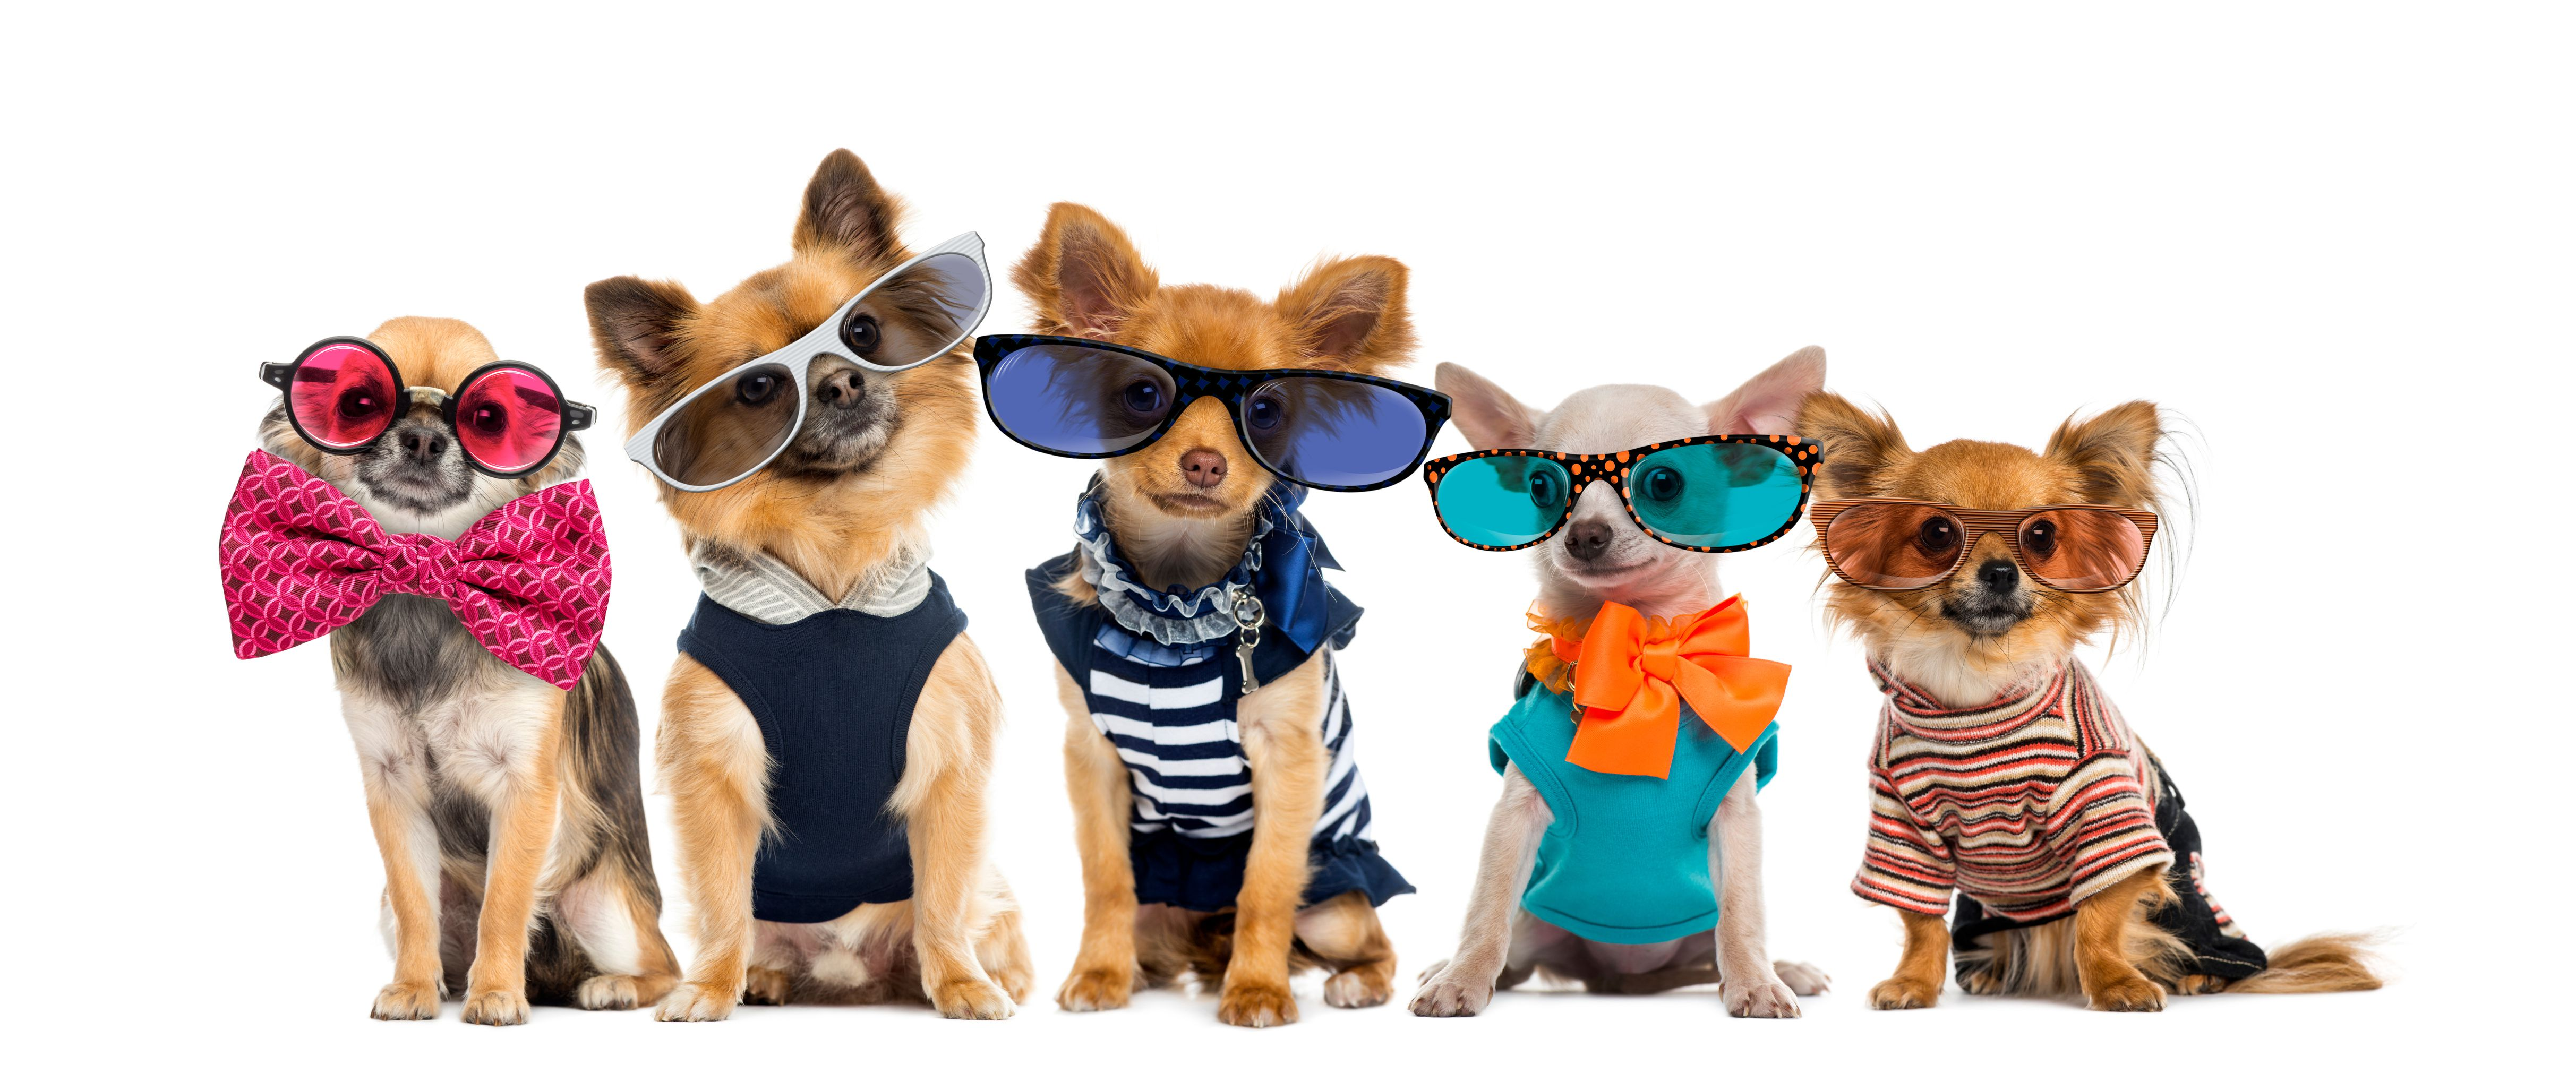 Learn How to Increase Sales in a Pet Shop